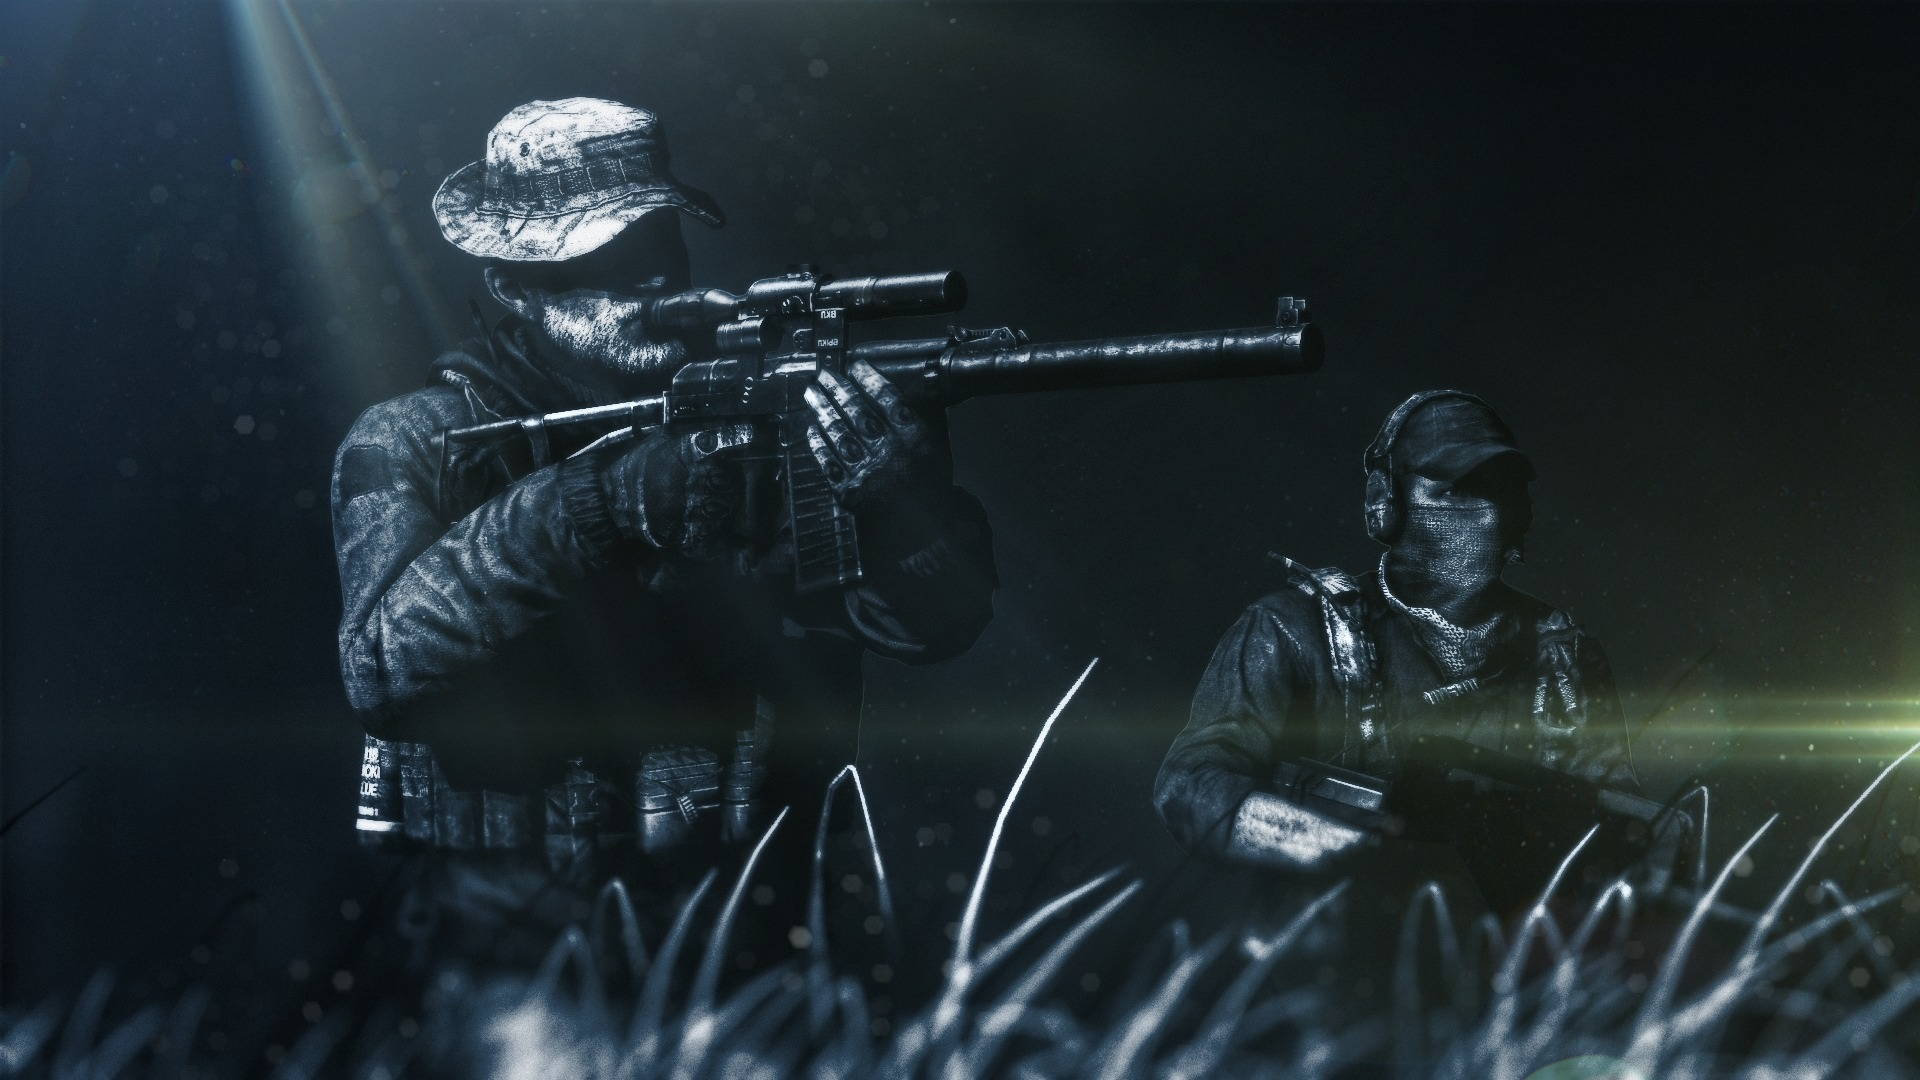 1920x1080 call of duty soldiers sas cod captain price desktop 1920x1080